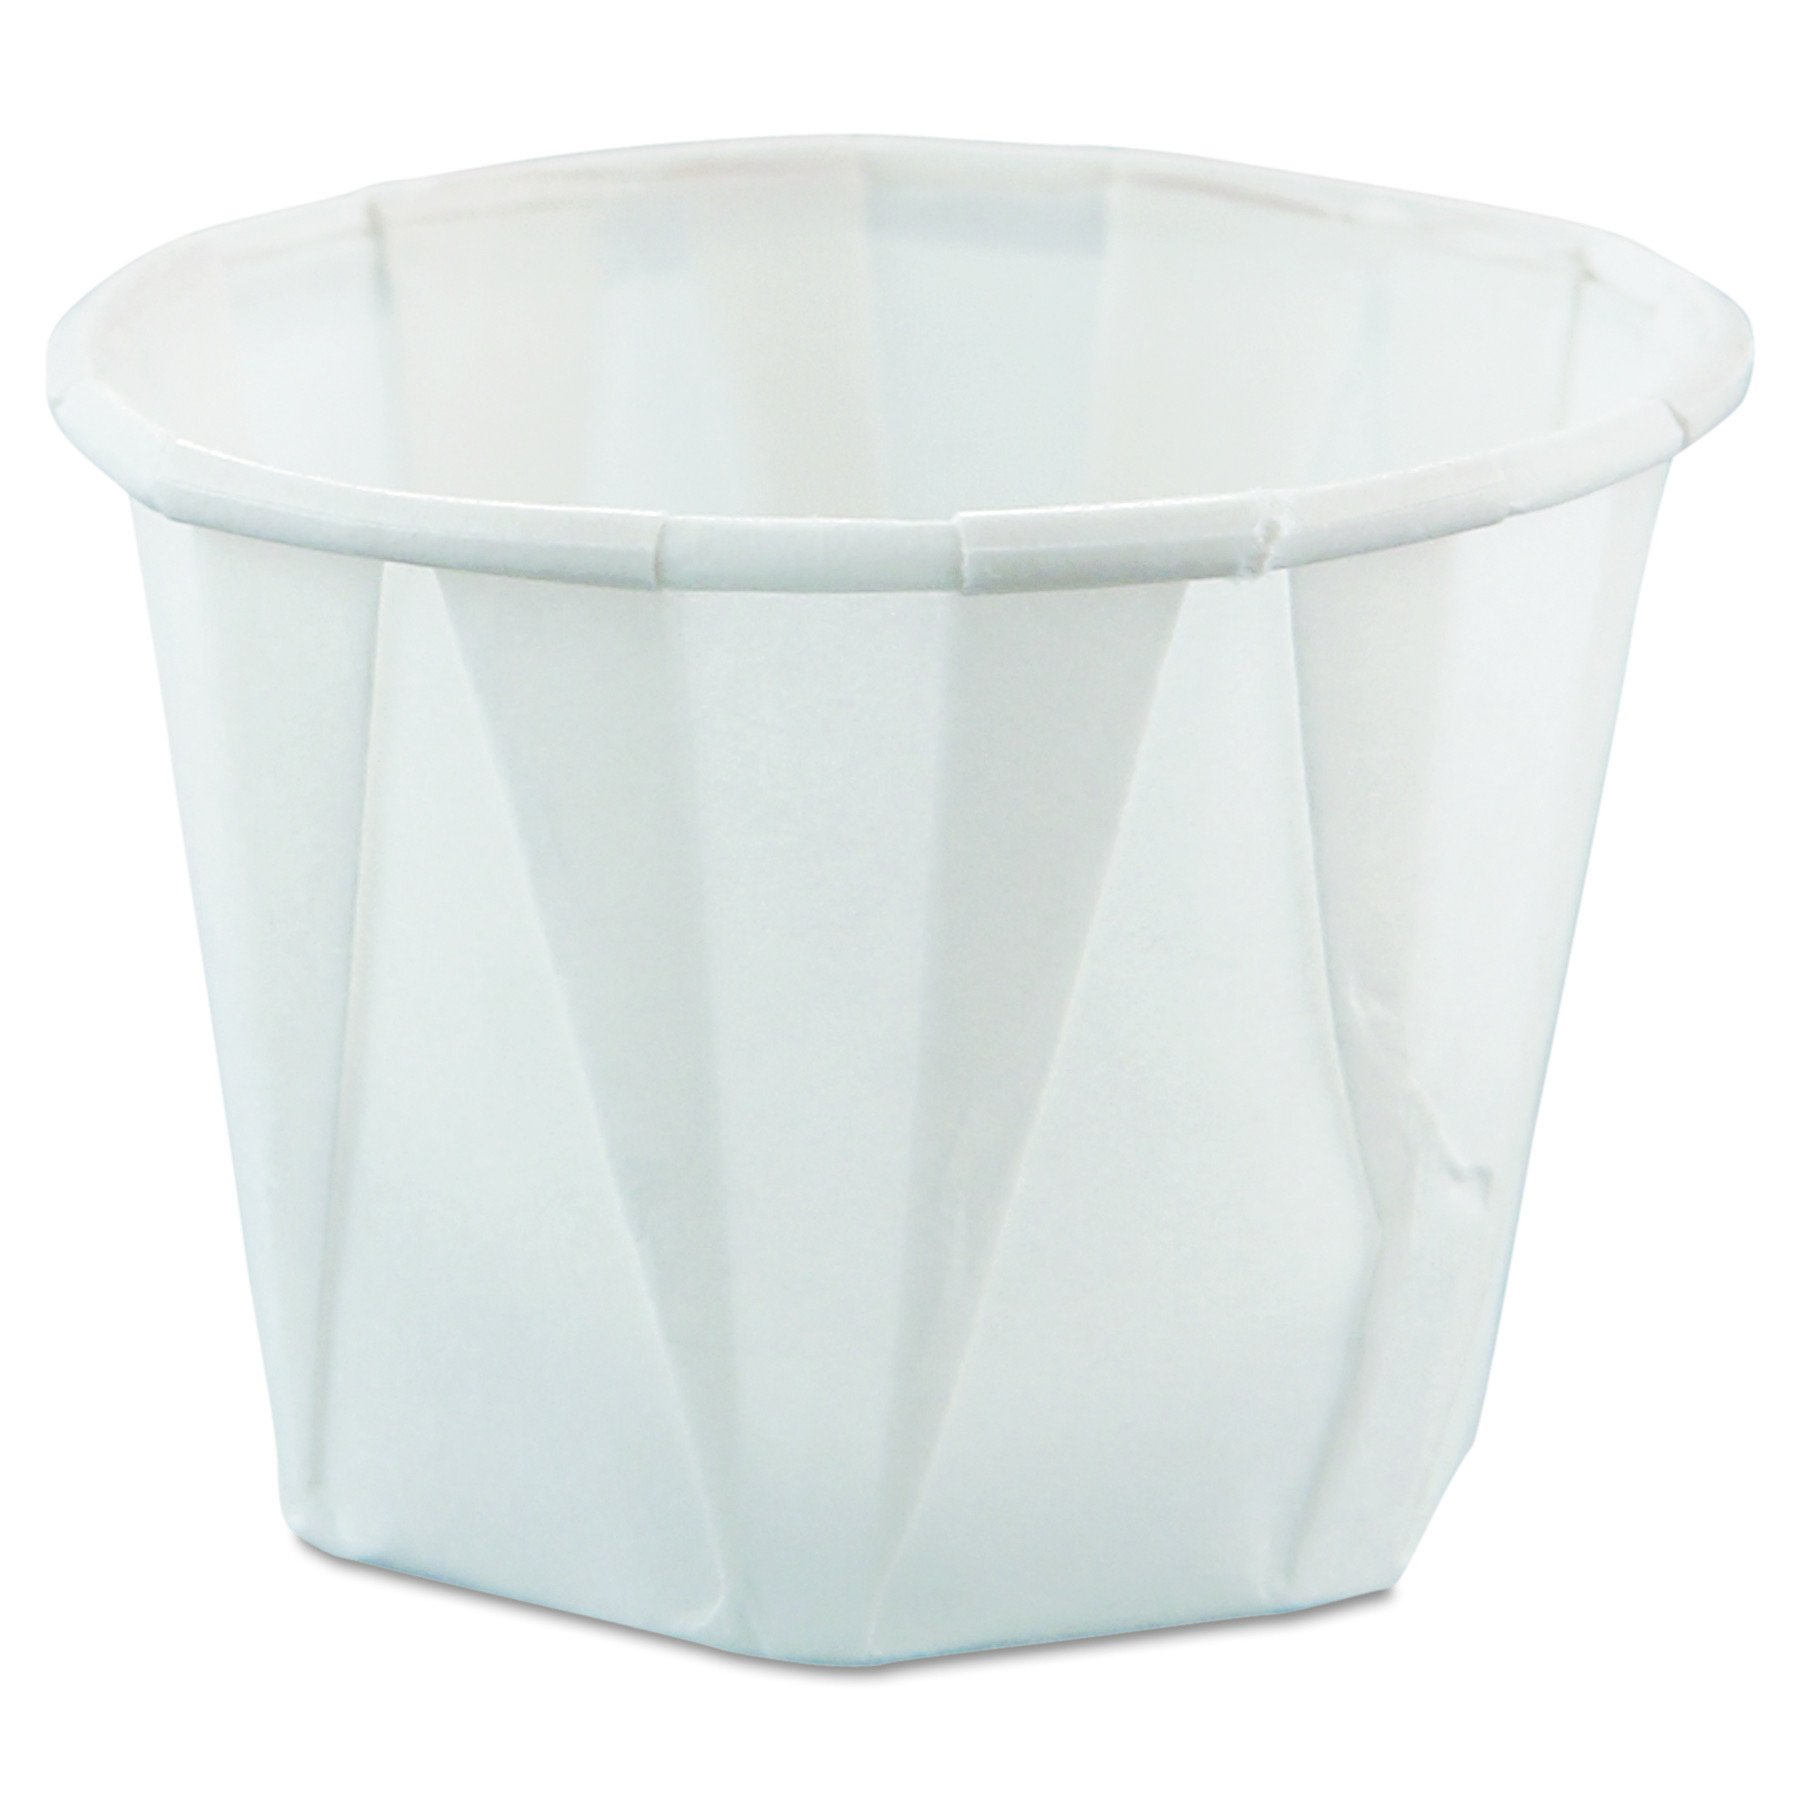 Solo 100-2050 1 oz Treated Paper Portion Cup (Case of 5000) by Solo Foodservice